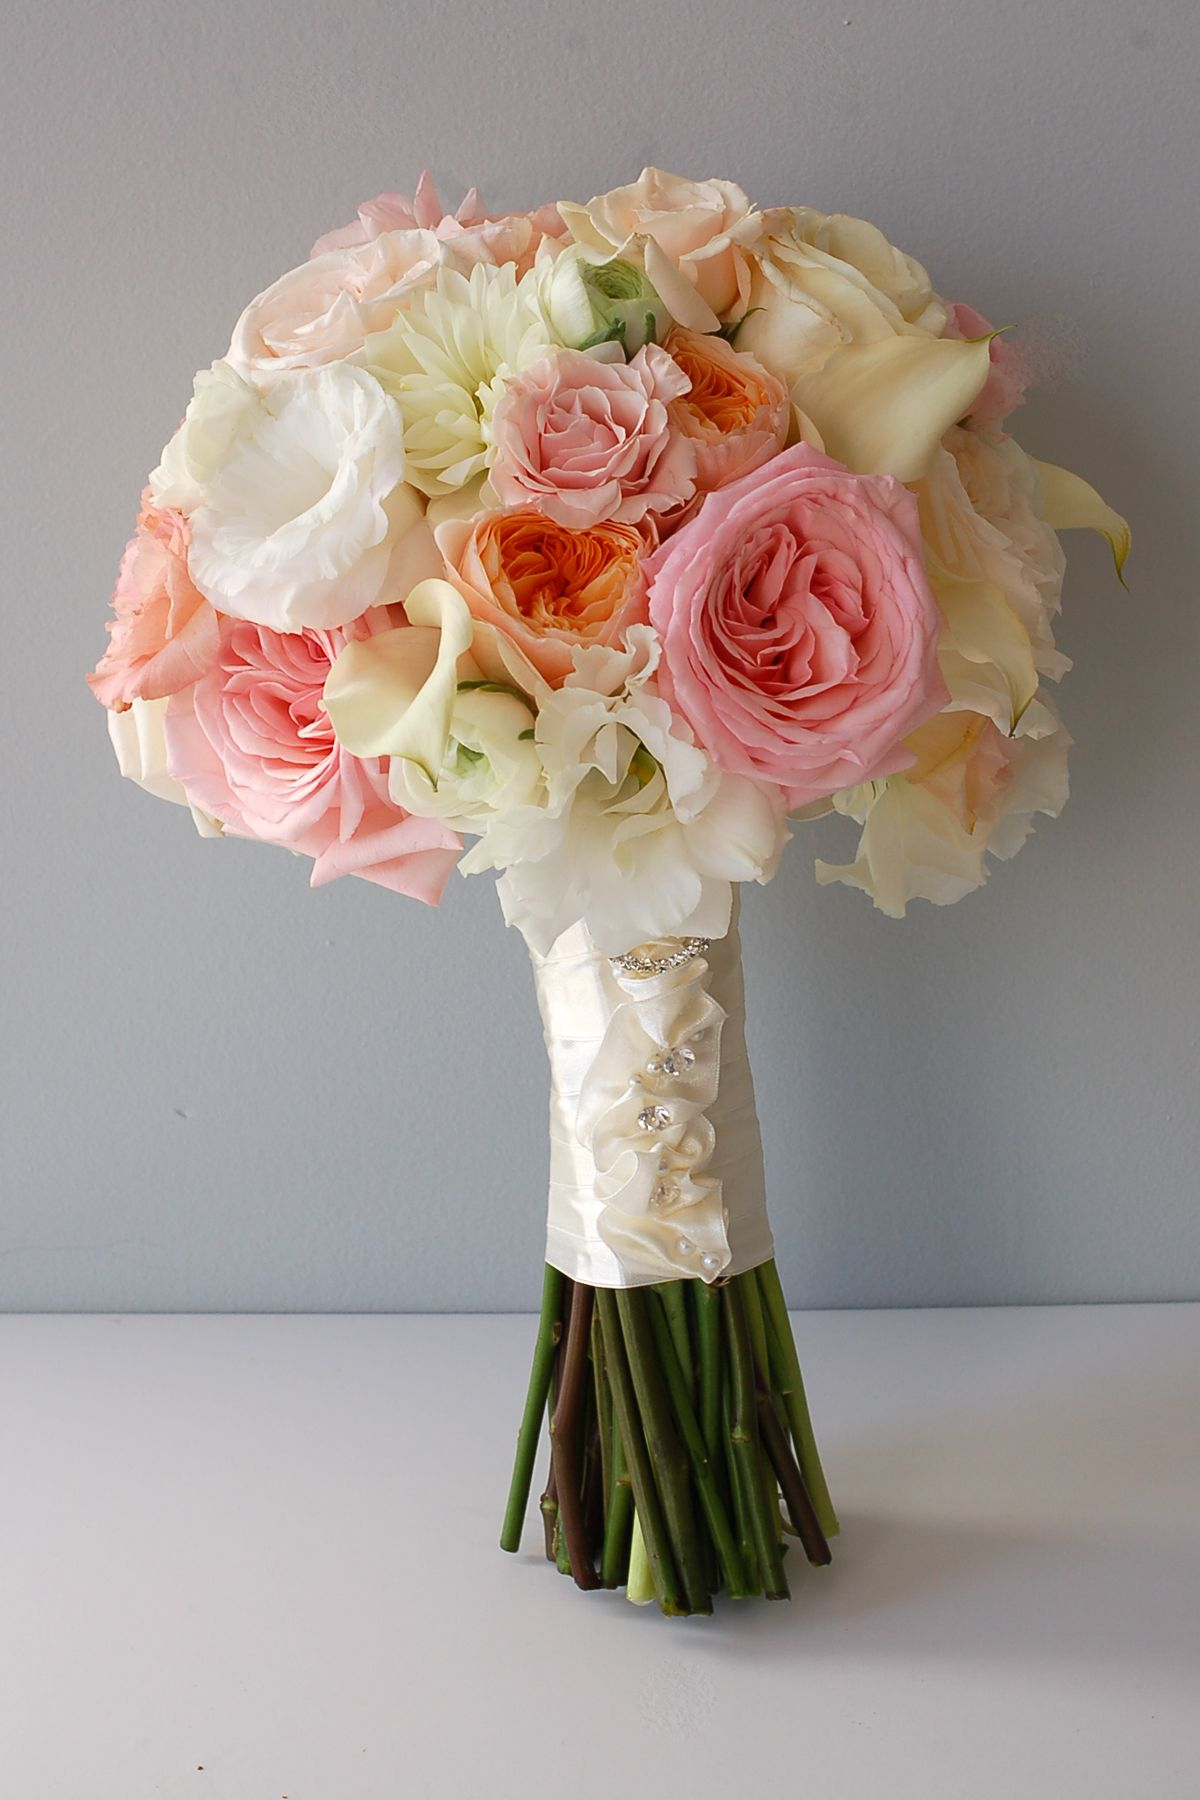 Rose Bridal Bouquets | Soft Textural Bouquet Featuring Garden Roses  Designed By Kio .